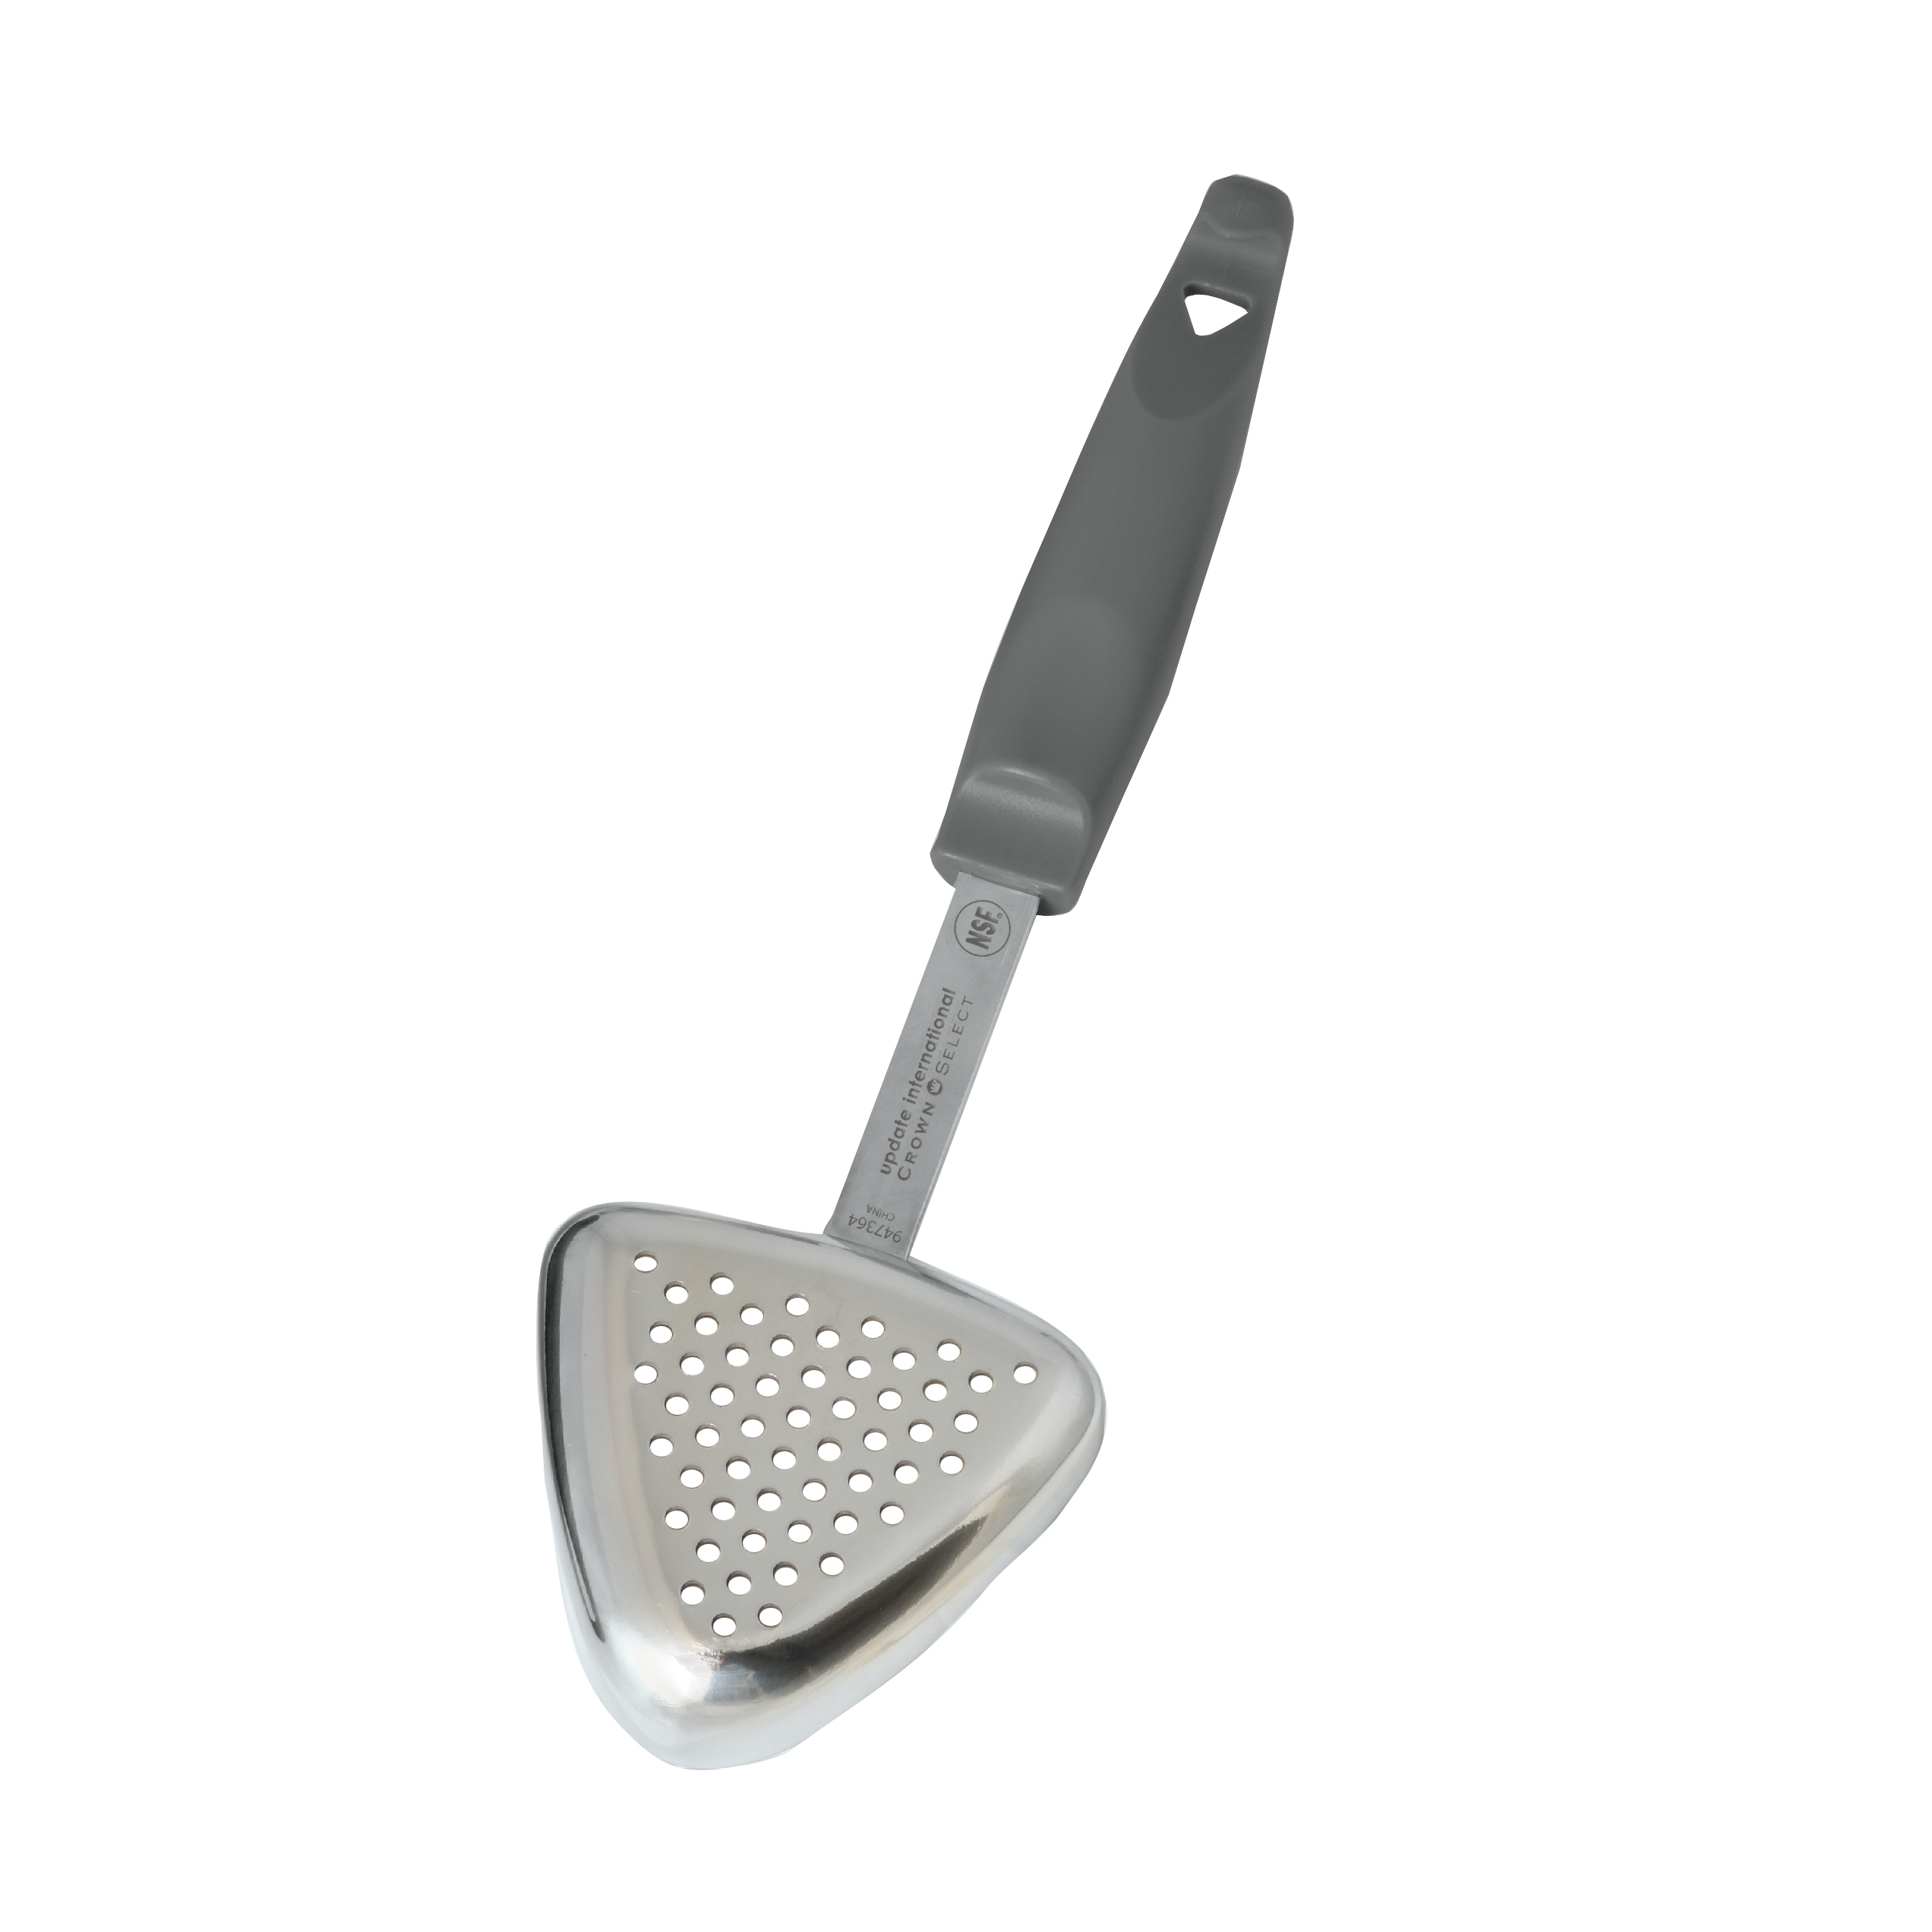 2350-34 Crown Brands, LLC 947364 spoon, portion control